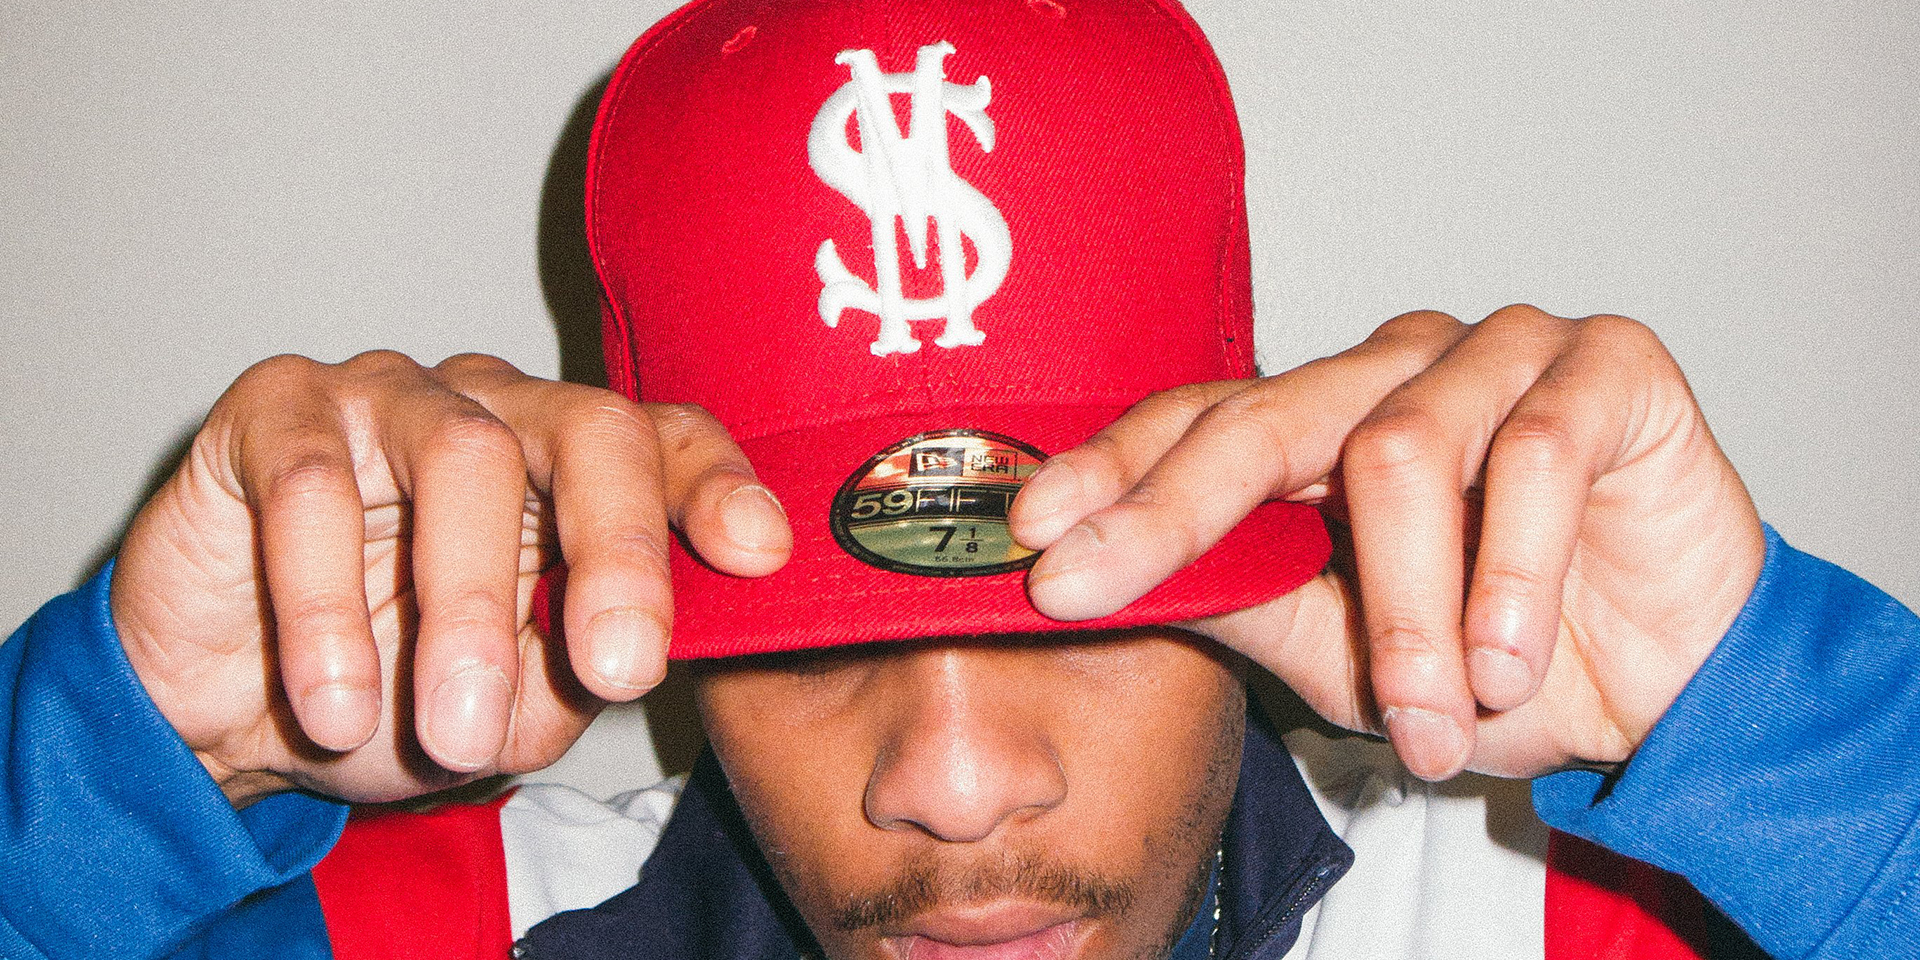 Savemoney Worldwide